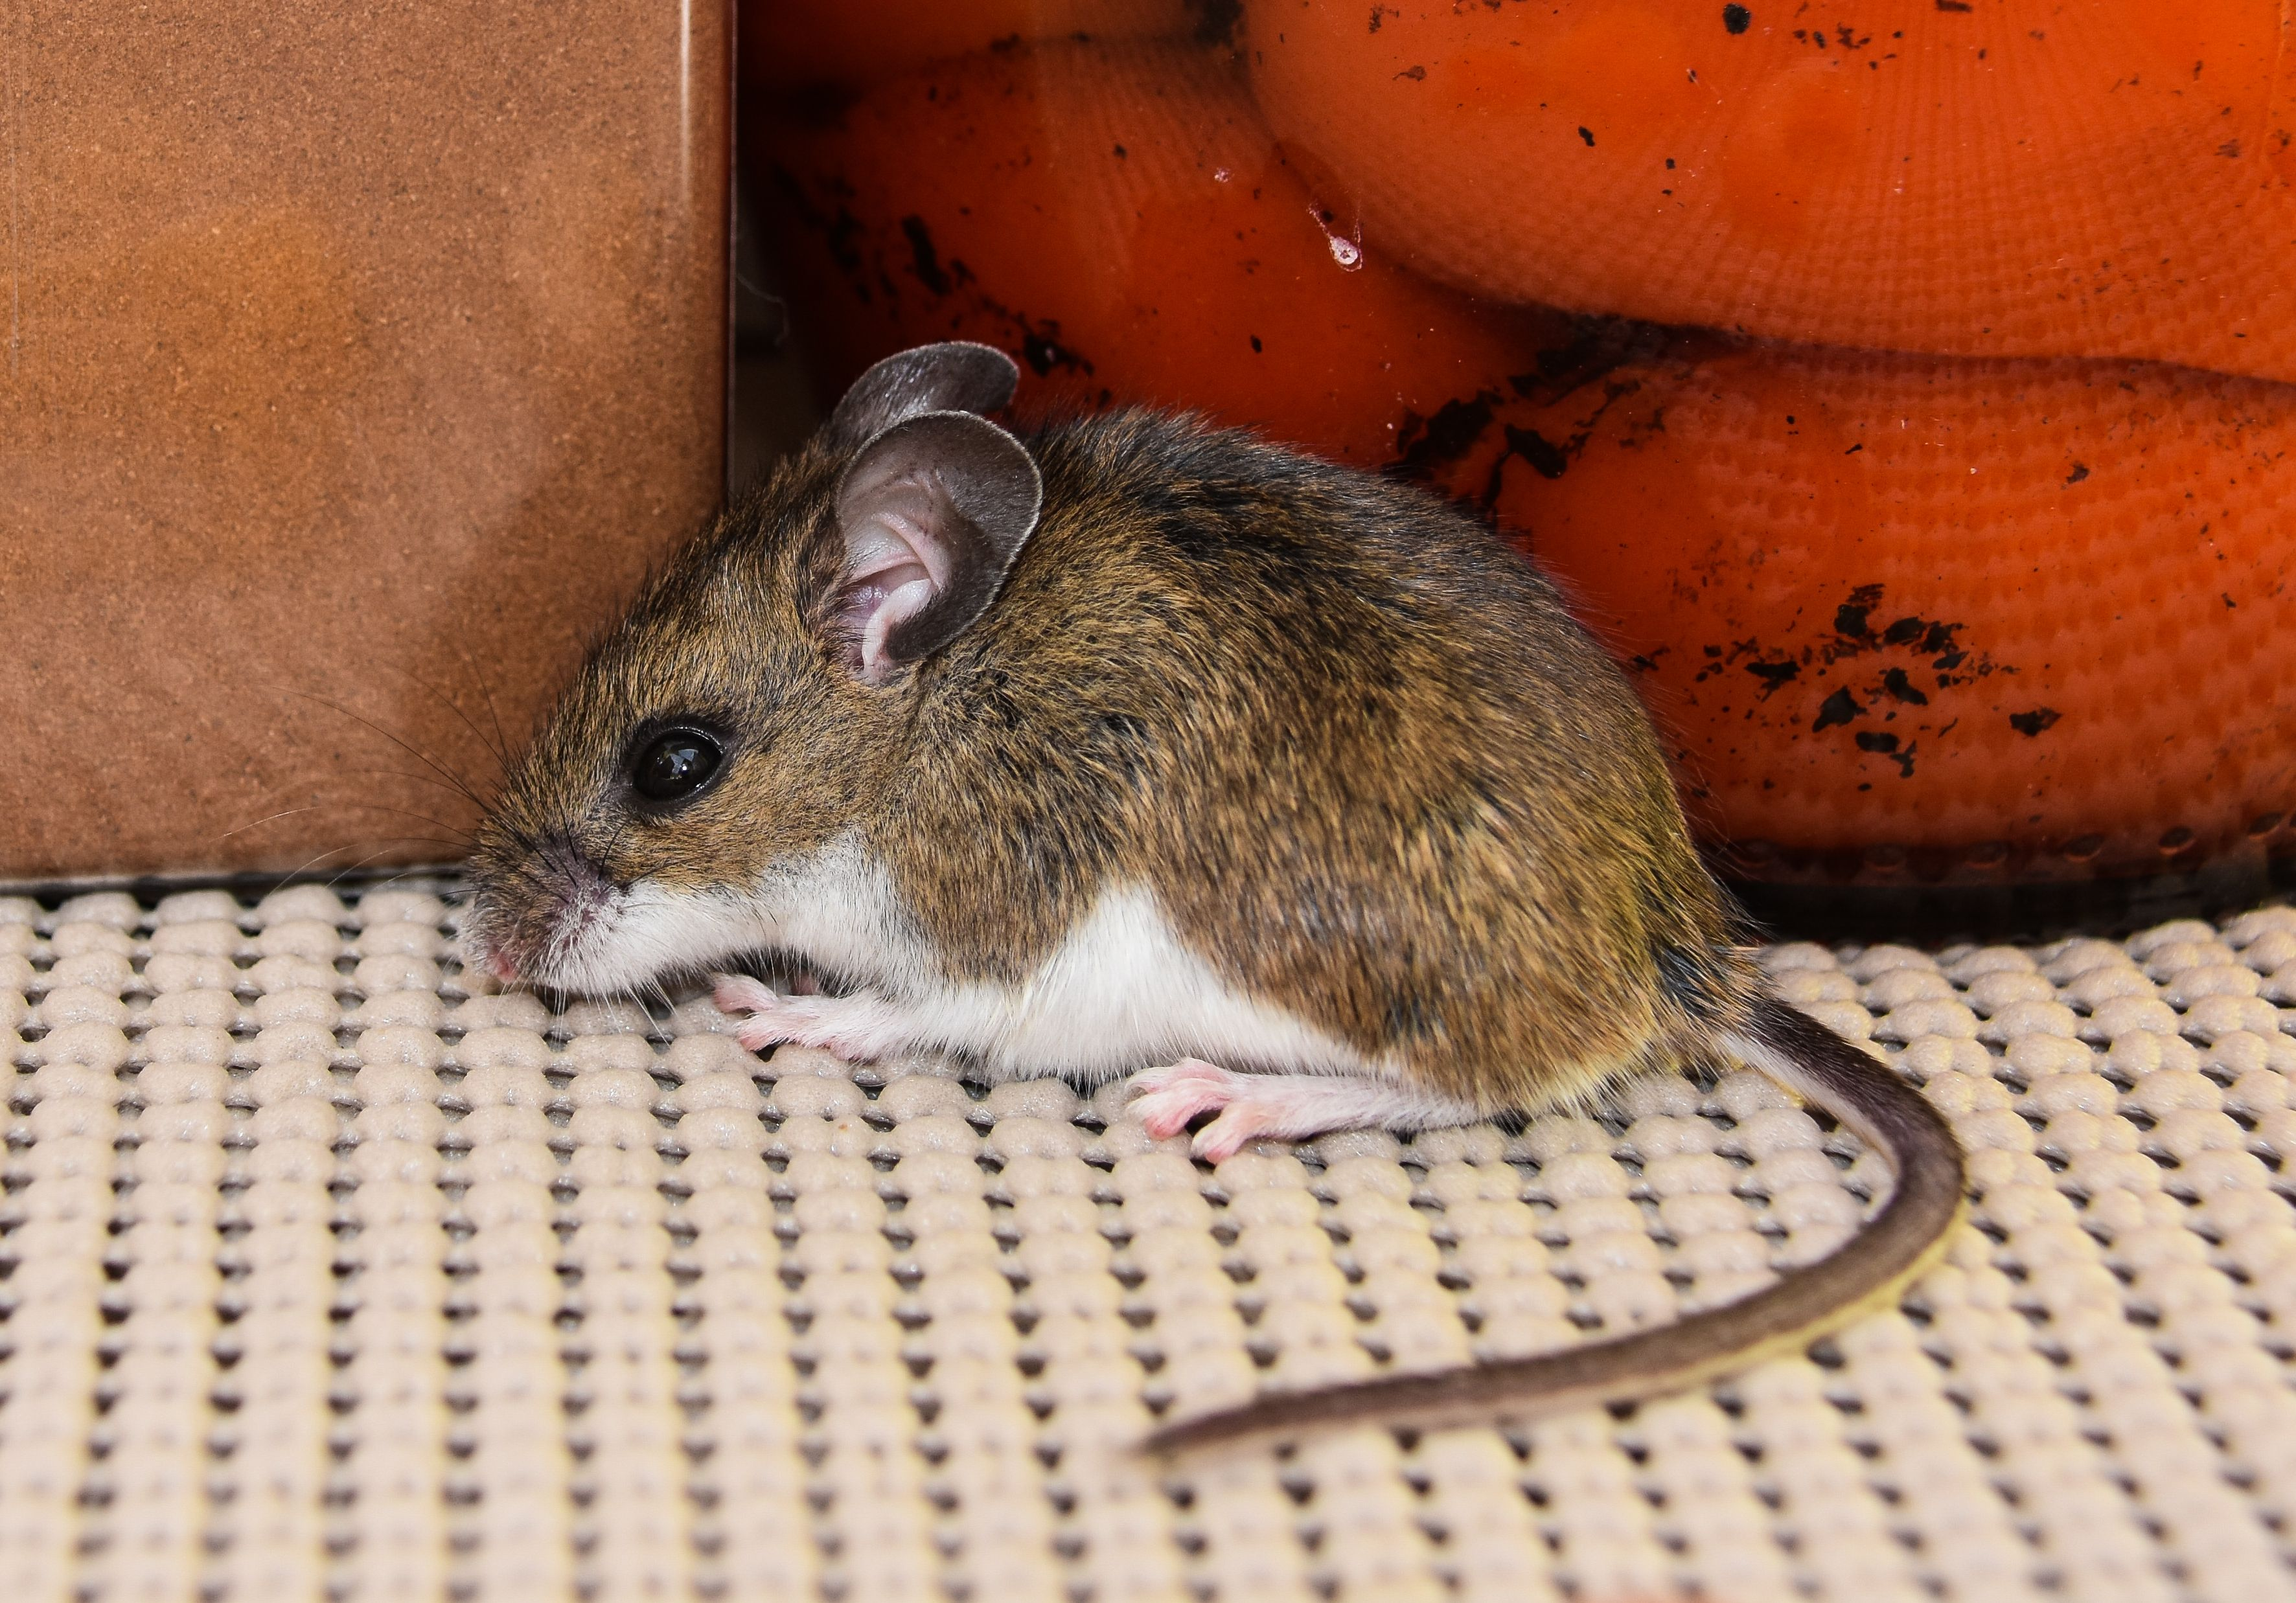 Pin By A1 Exterminators On Bug Pest Control Tips In 2020 Mice Infestation Health Risks Infestations